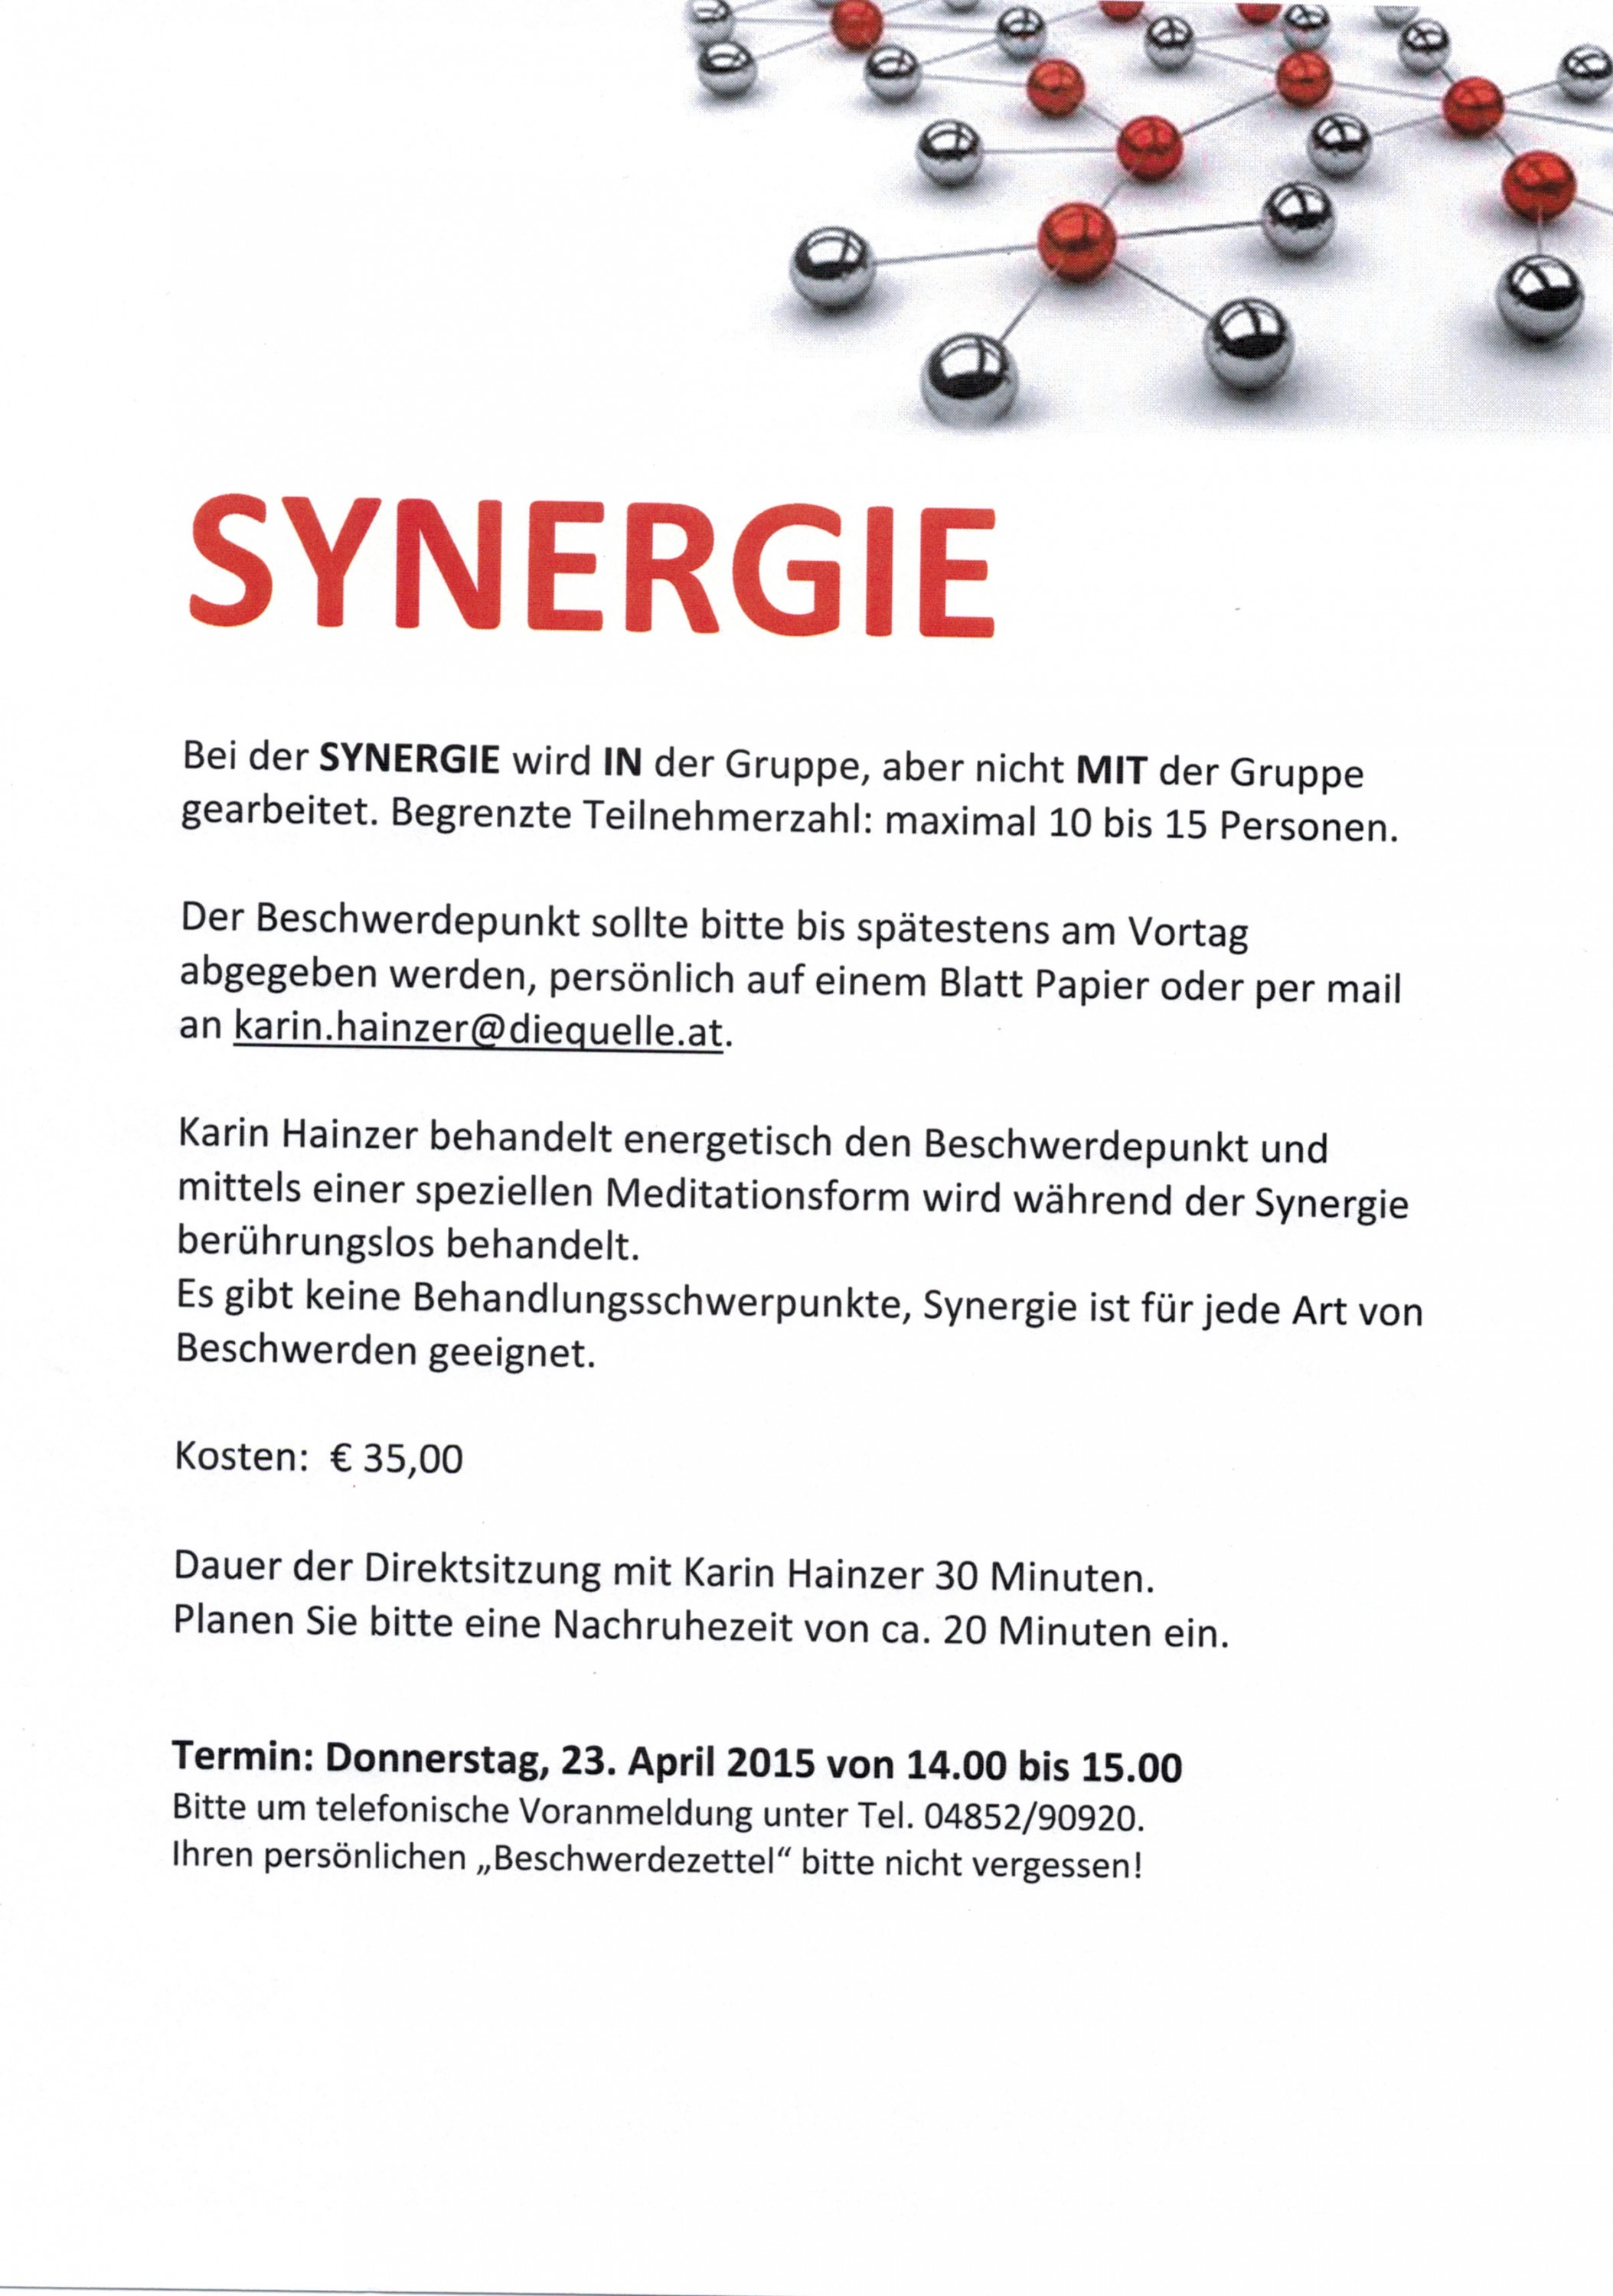 Synergie 23.04.2015